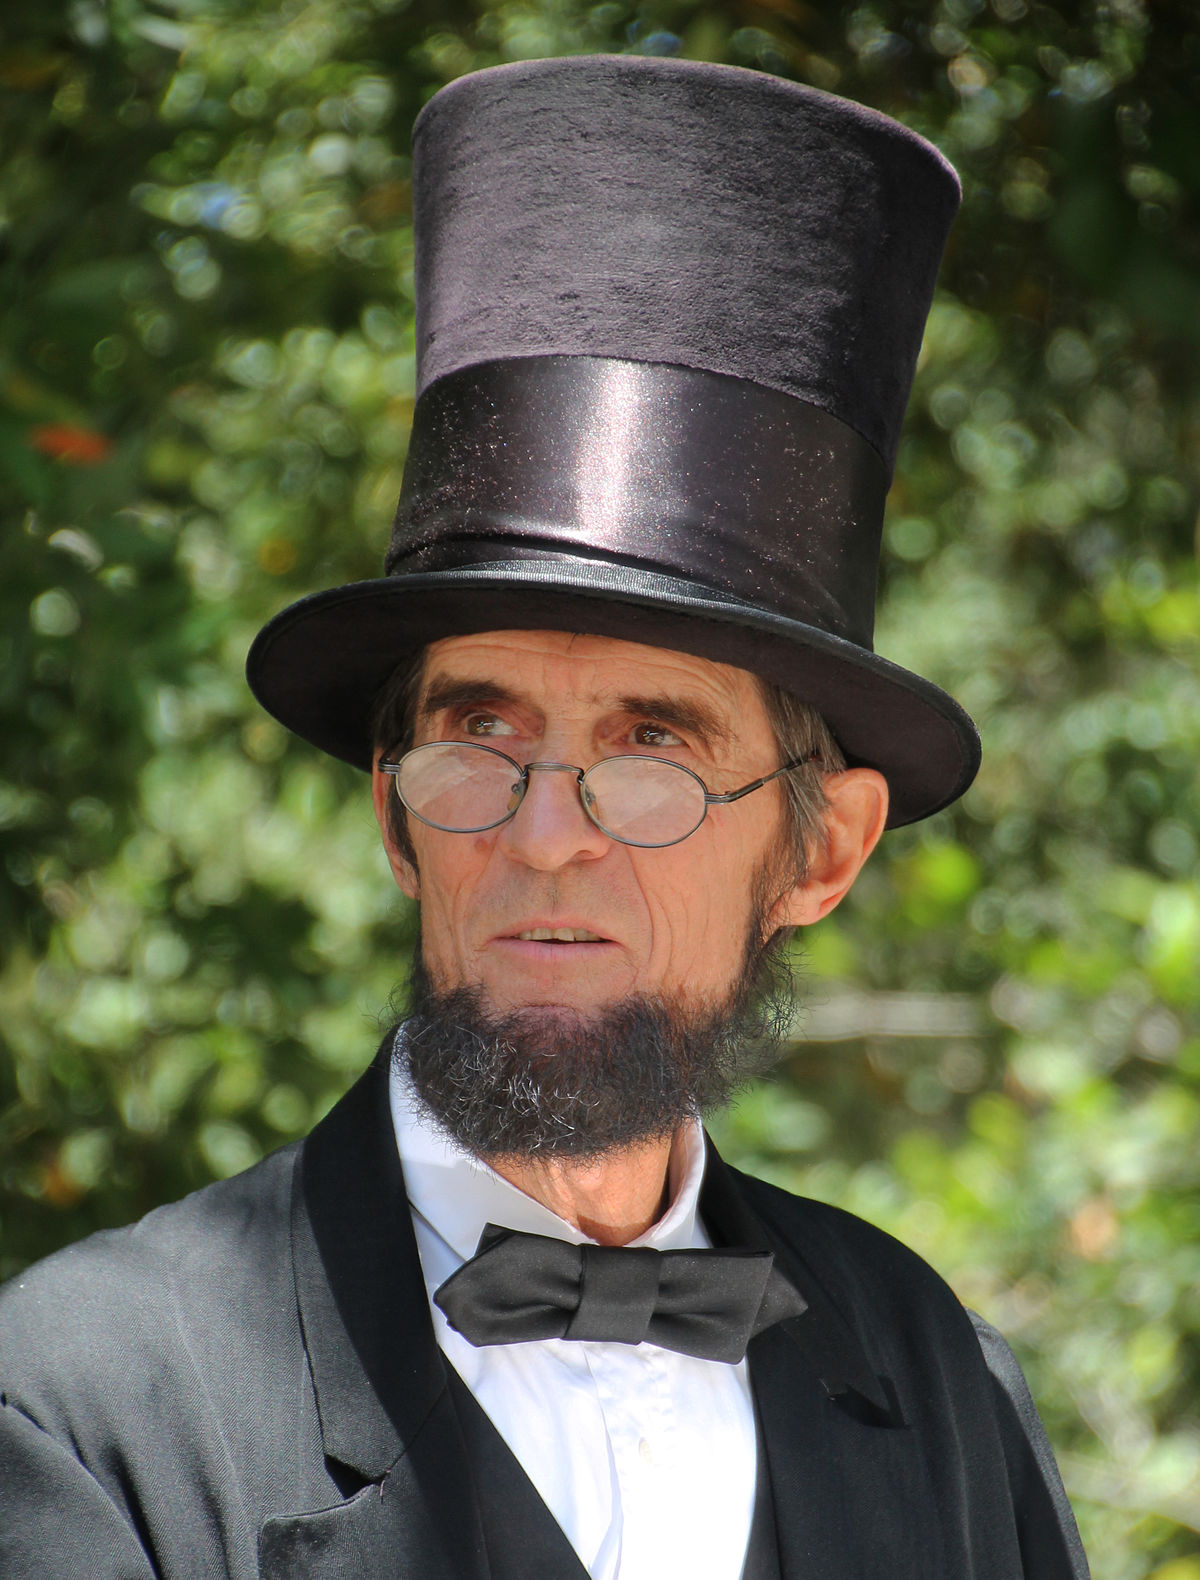 abraham lincoln hat wiktionary